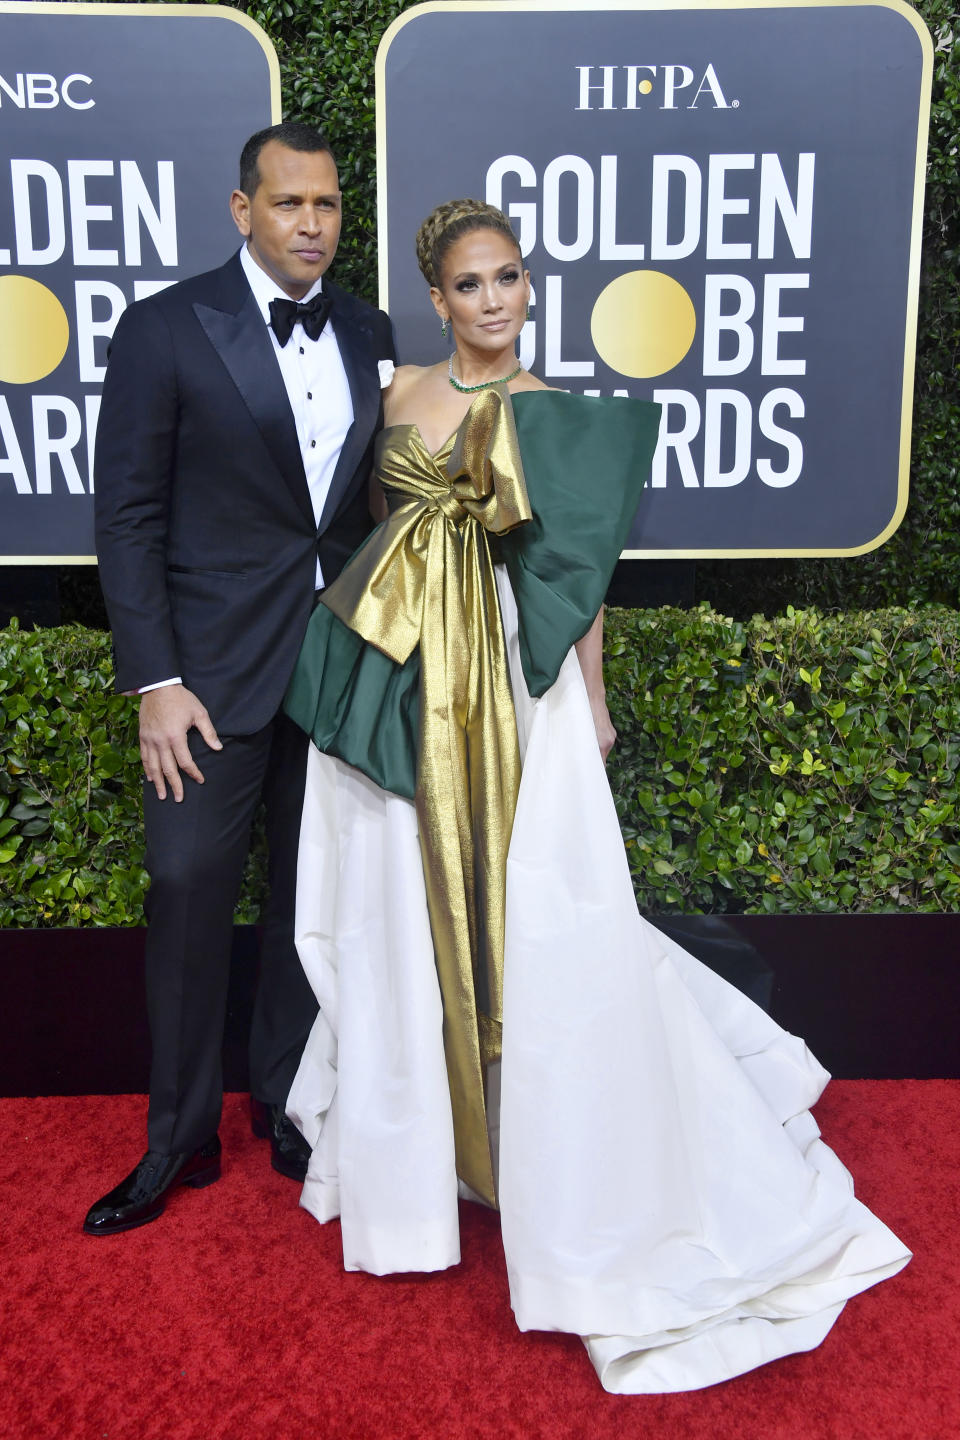 """Nominated for her role in """"Hustlers,"""" Jennifer Lopez gifted the red carpet with a bold look by Valentino. (Photo by Frazer Harrison/Getty Images)"""